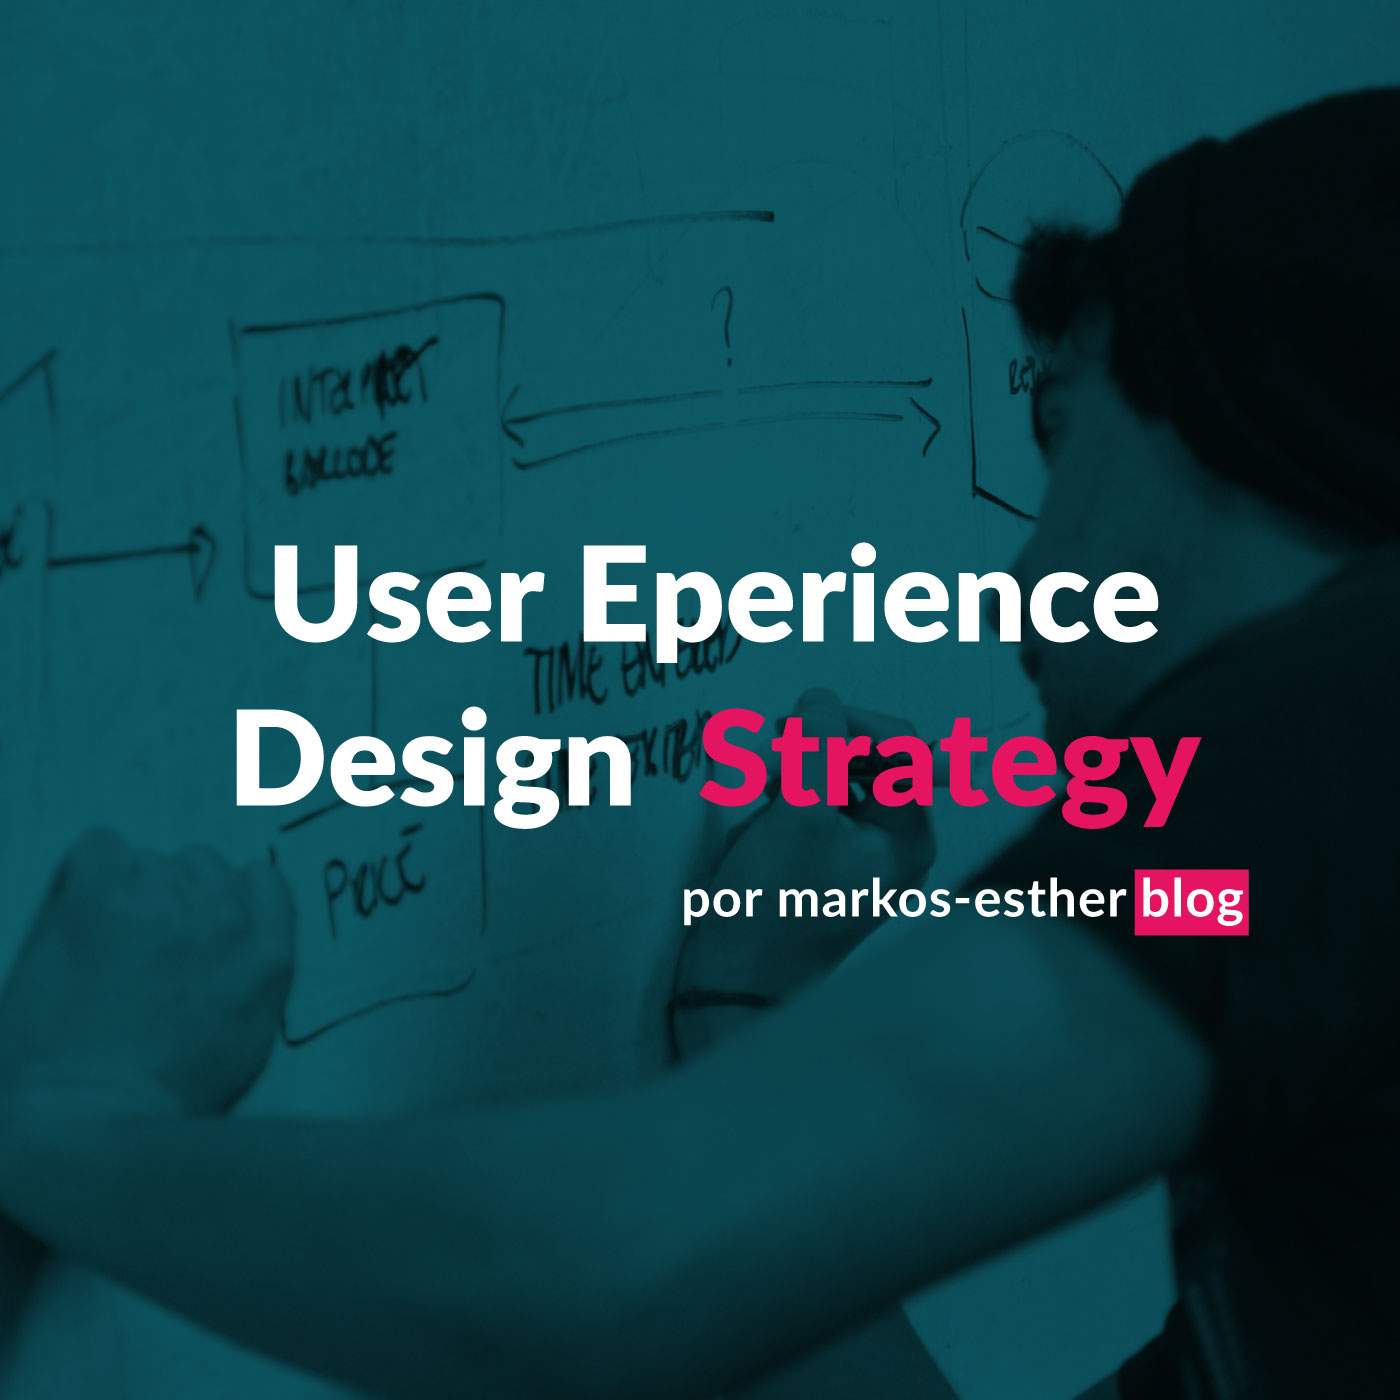 User Experience Design Strategy